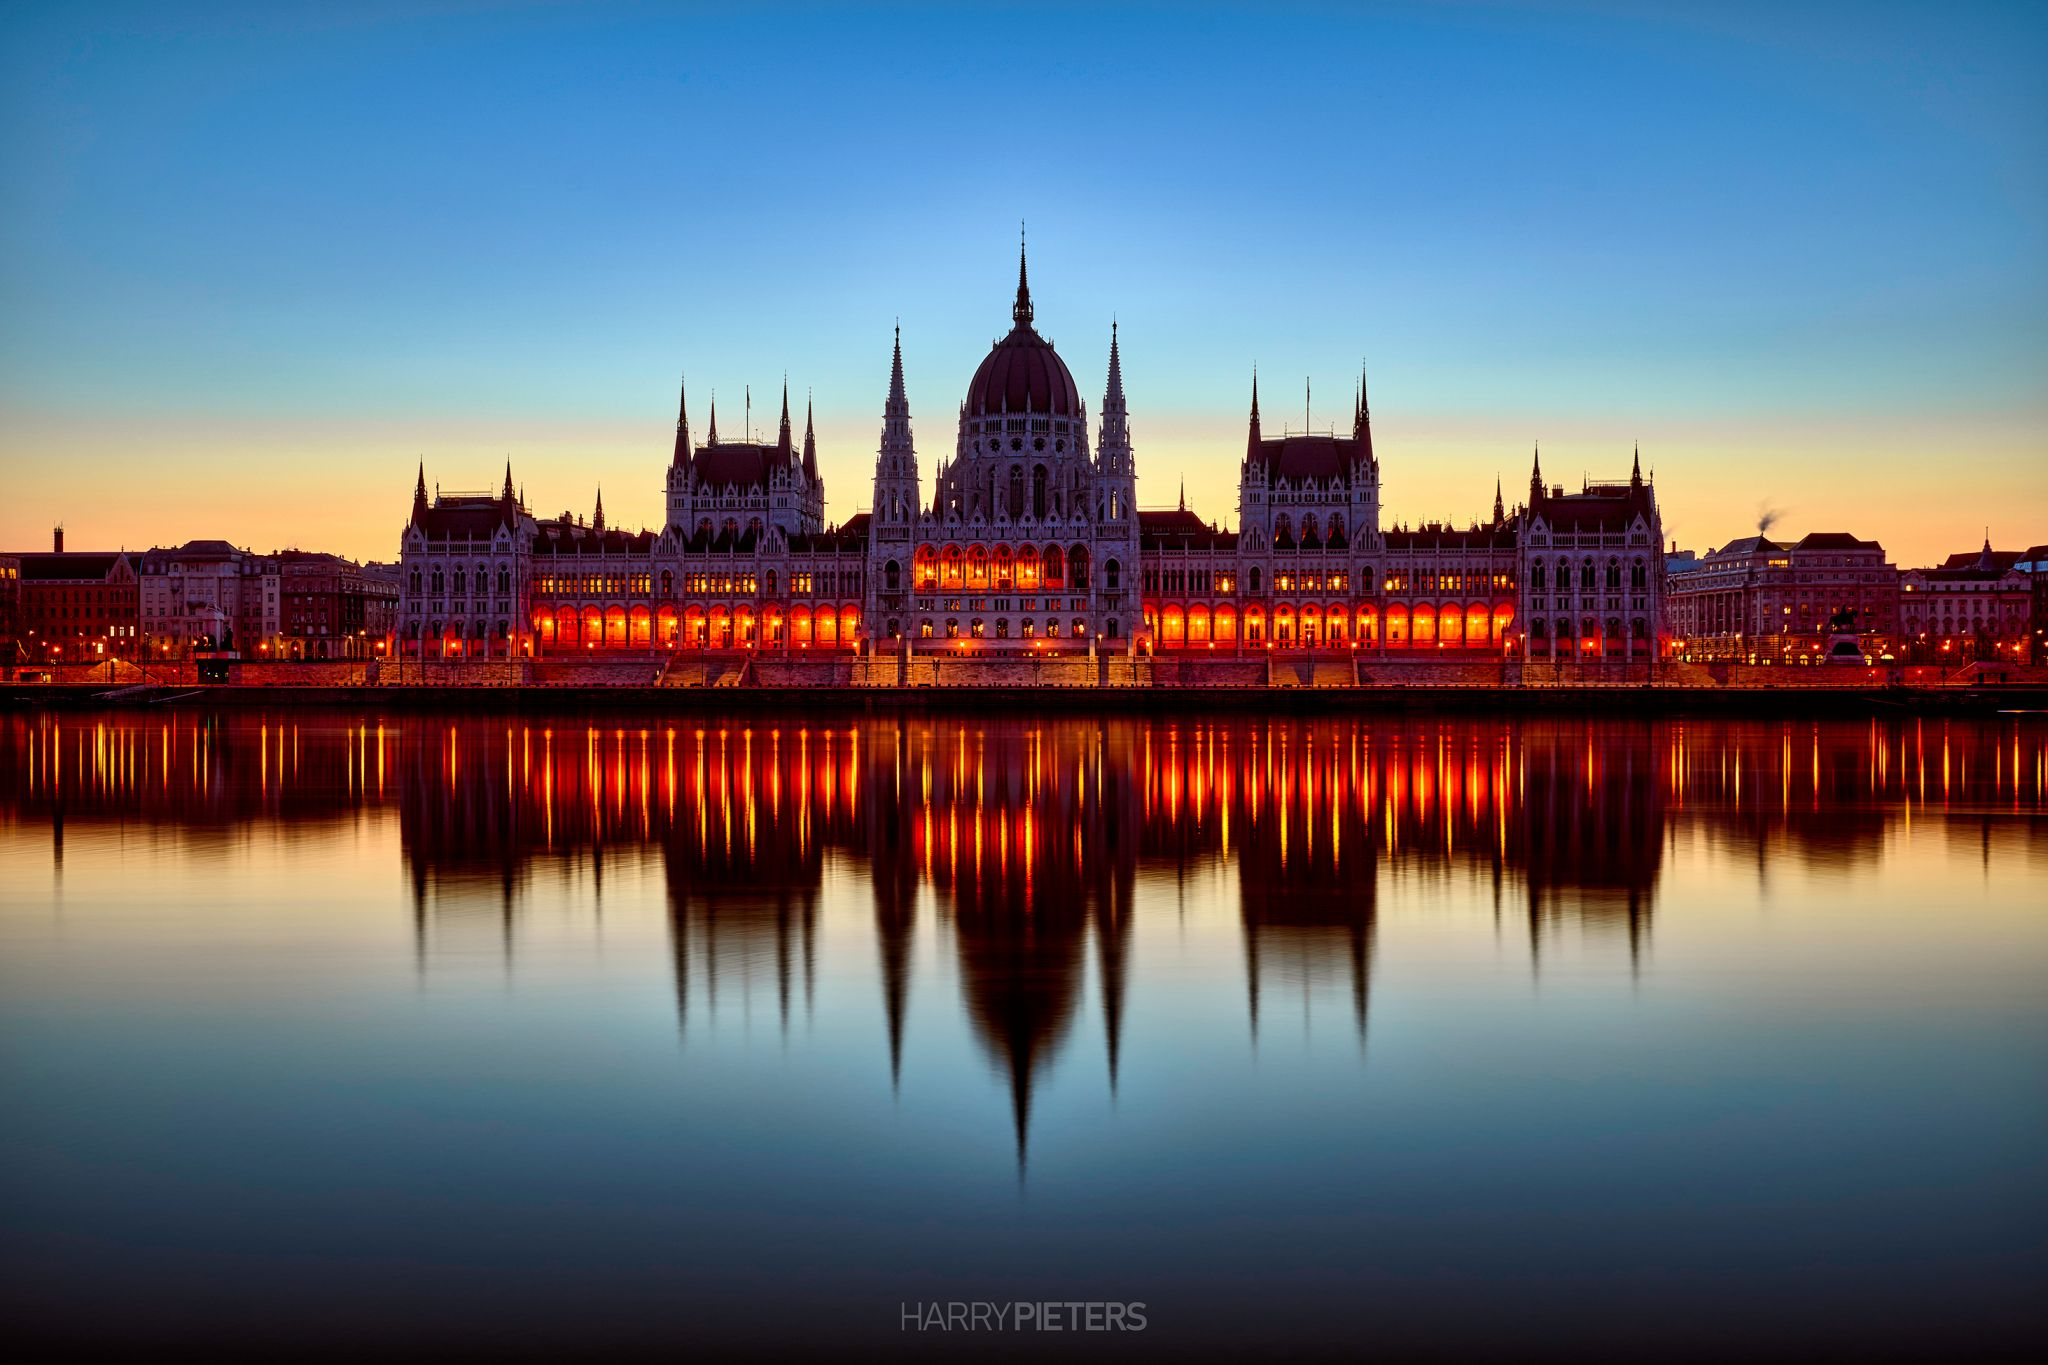 The Parliament Building / Orszaghaz, Hungary